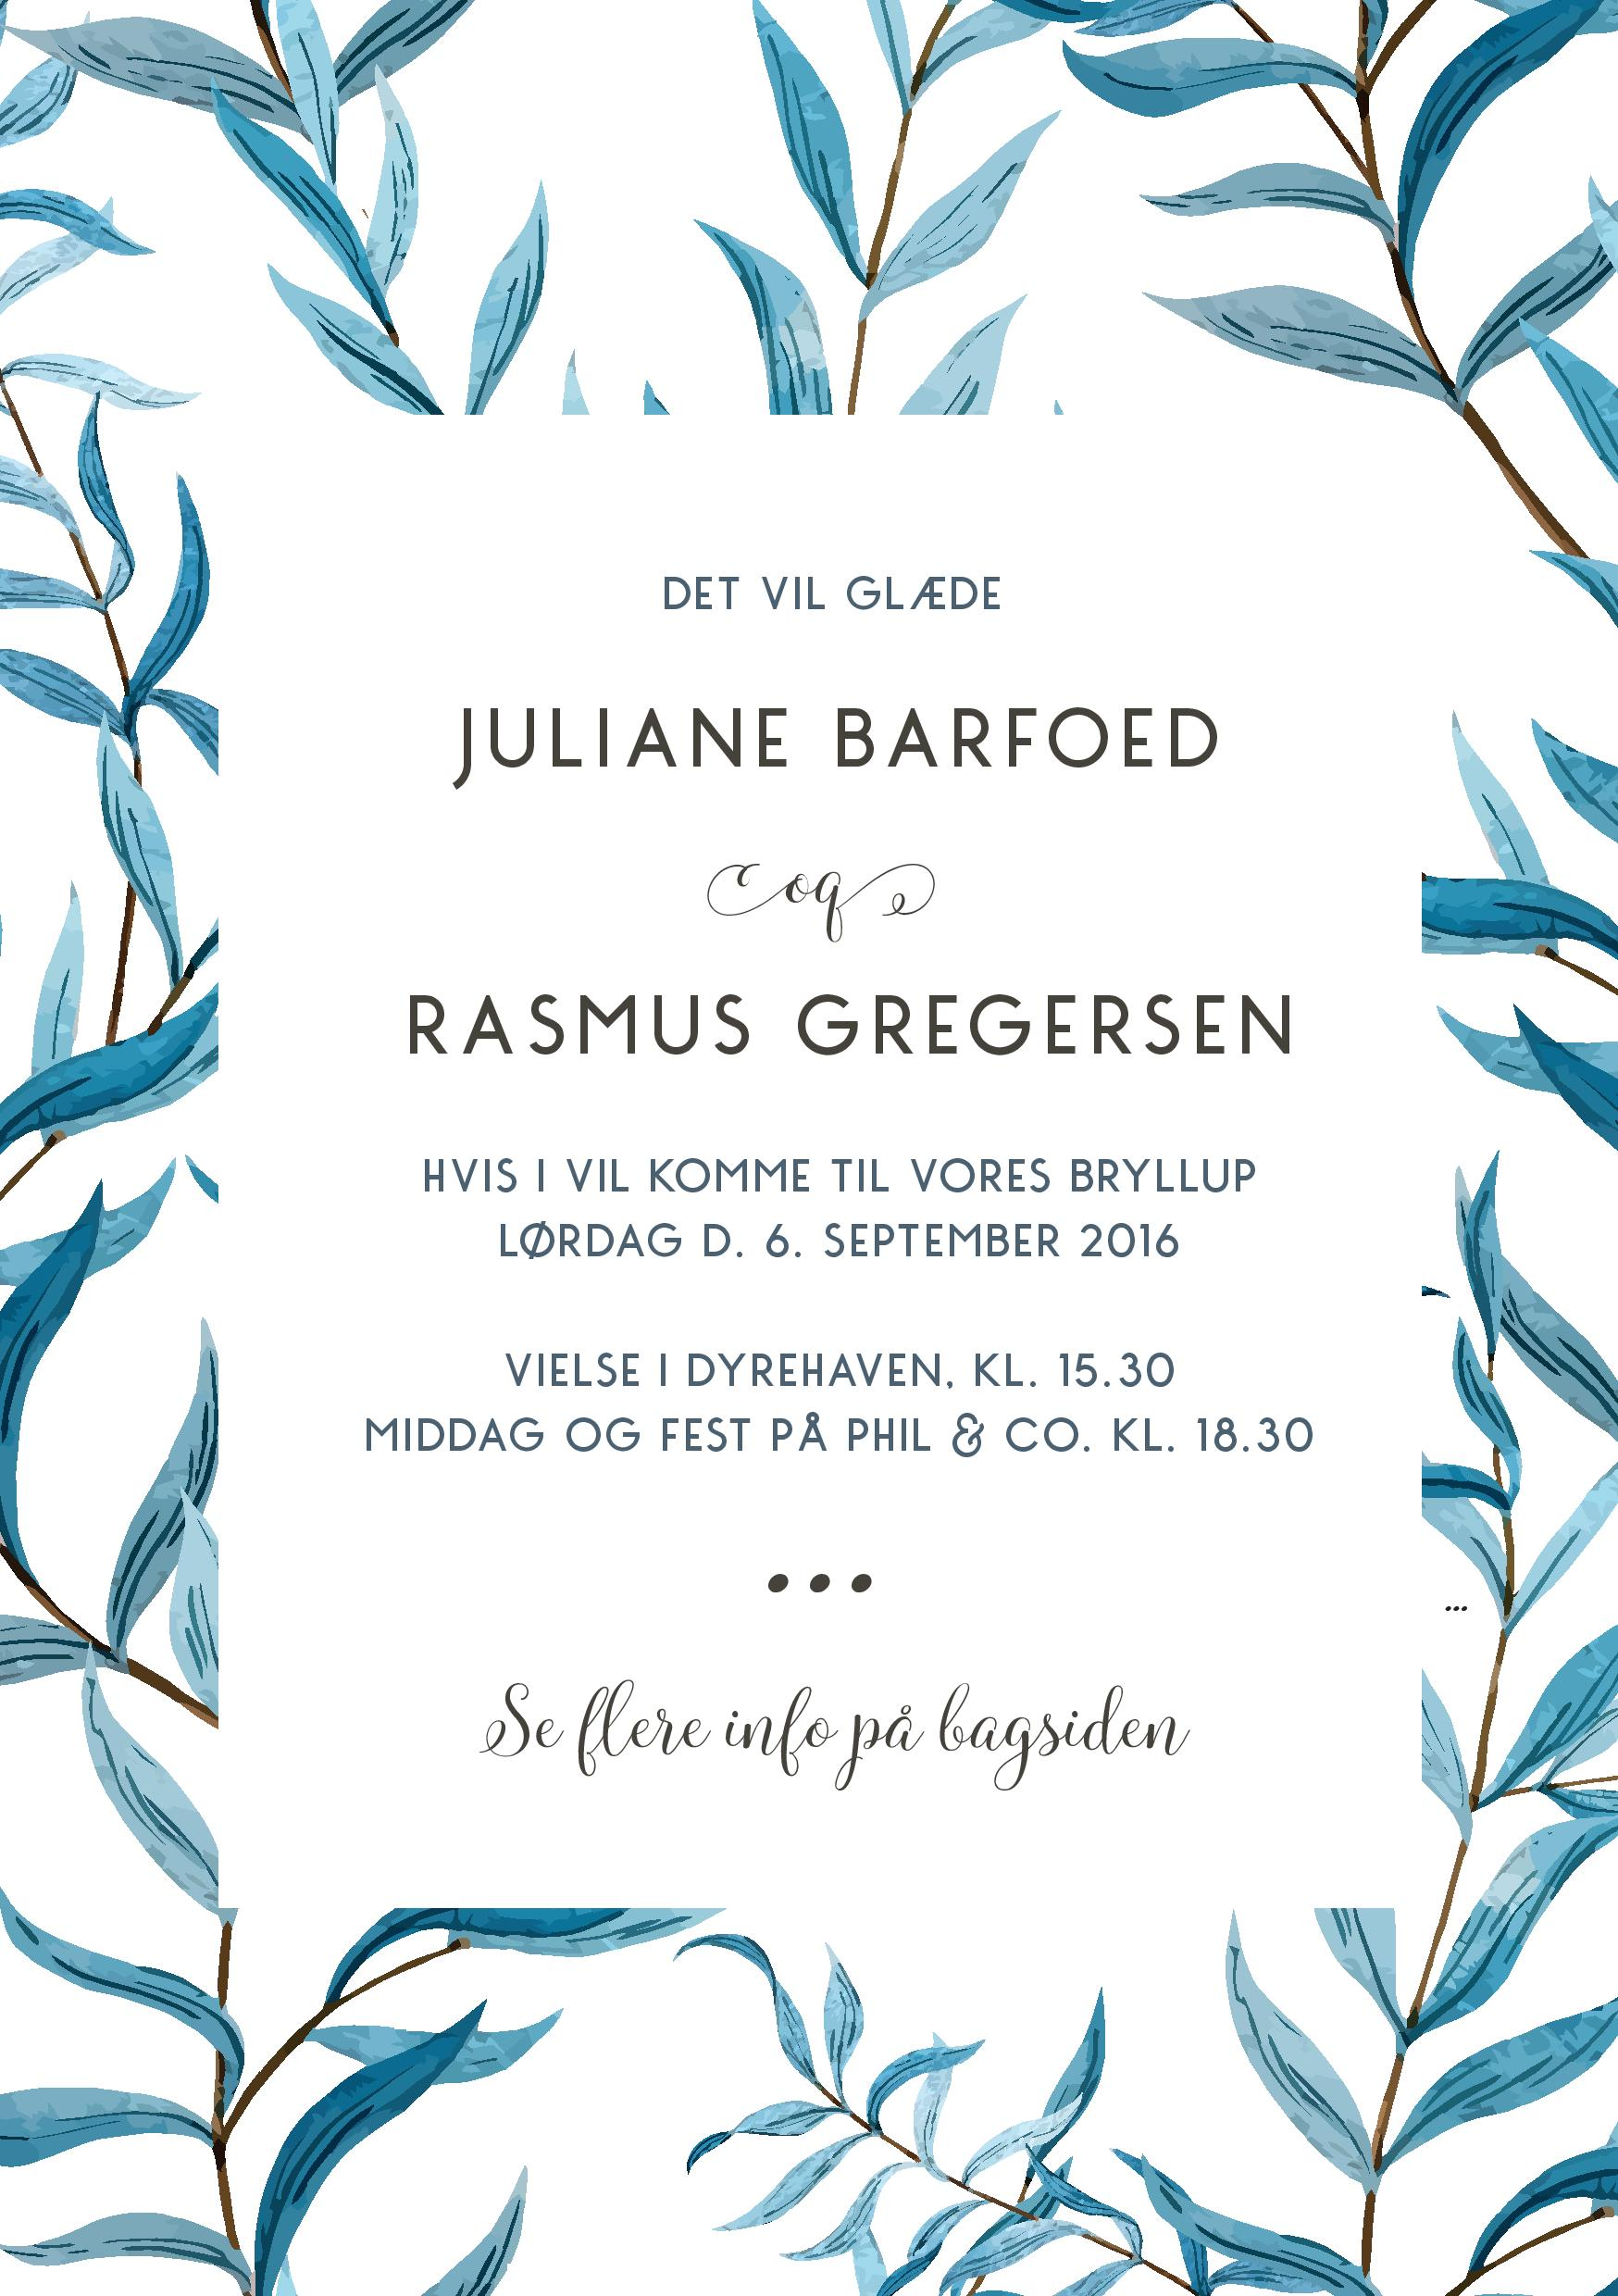 /site/resources/images/card-photos/card-thumbnails/Juliane & Rasmus/1488565851_front_thumb.jpg